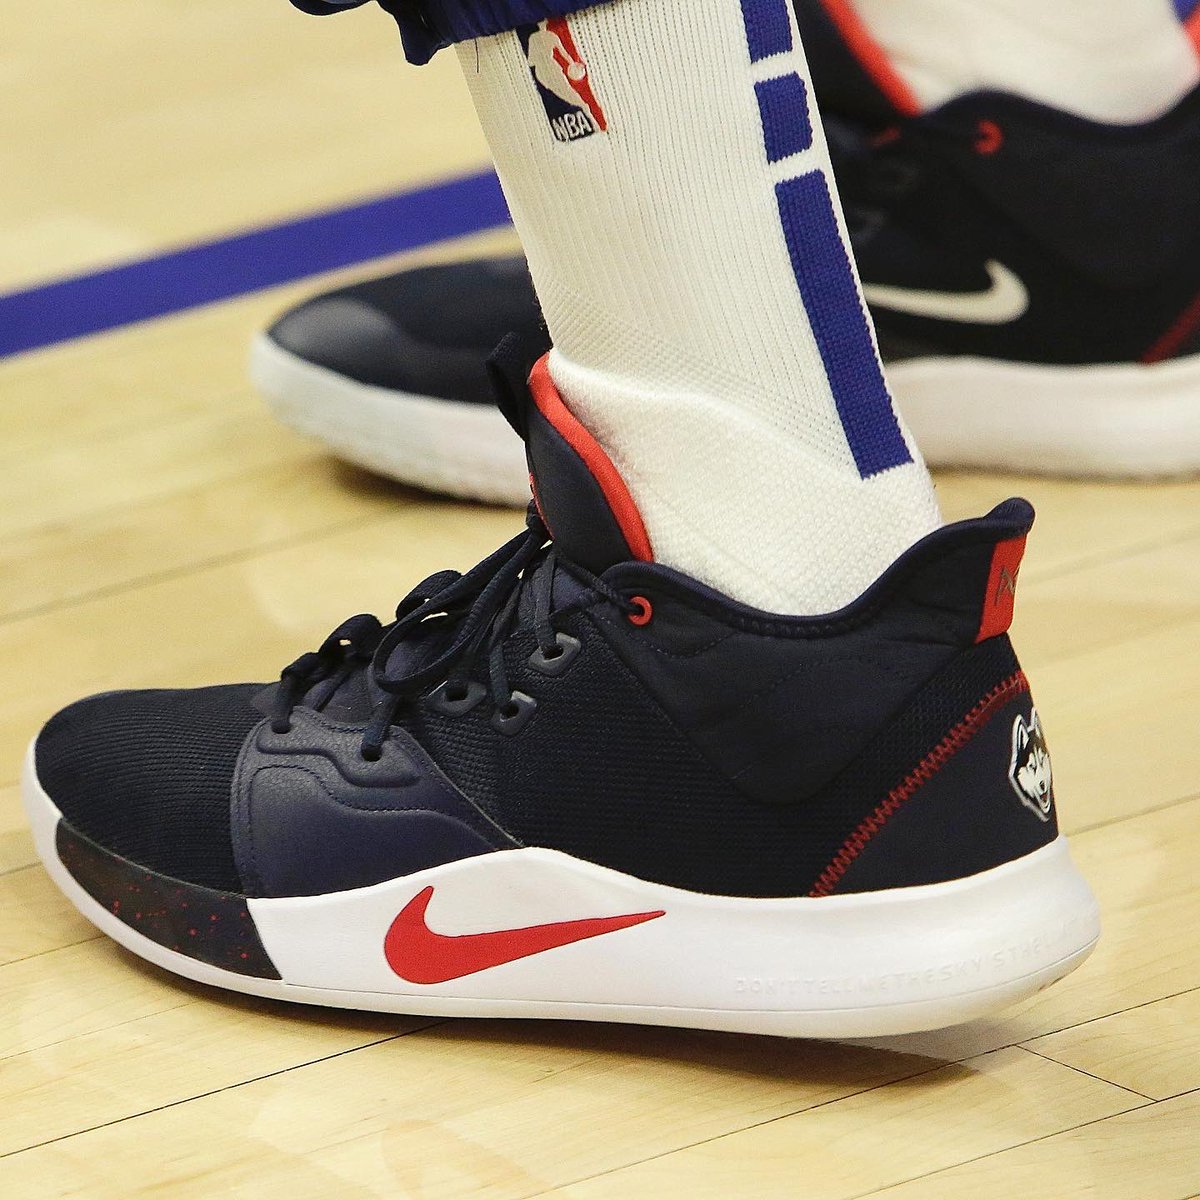 Paul George warmed up, and hooped in the UCONN Nike PG 3 PE home and away #NBAKicks